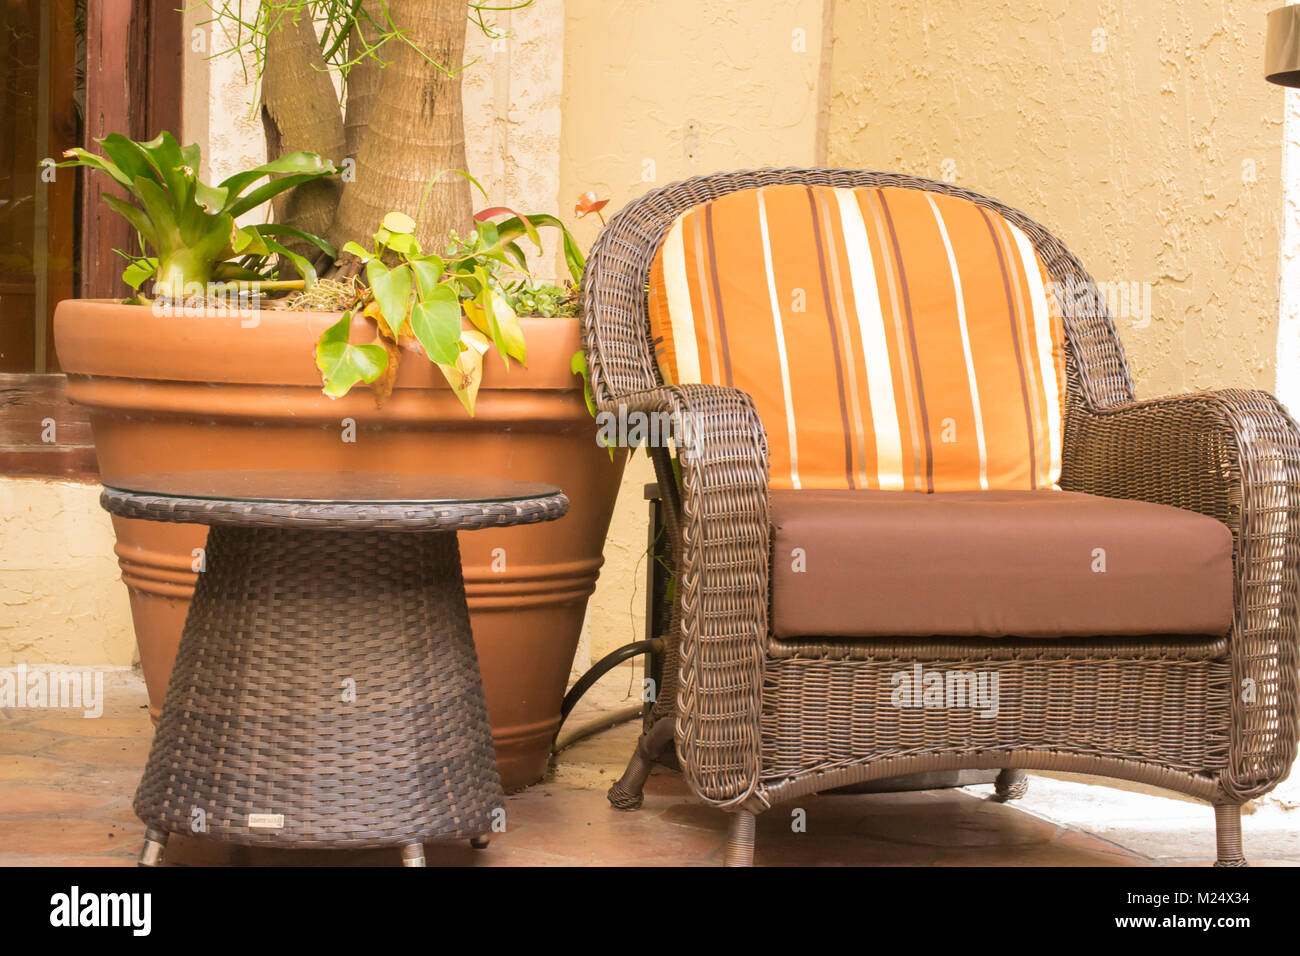 Wicker Chair with Orange striped cushion and terra cotta planter Stock Photo